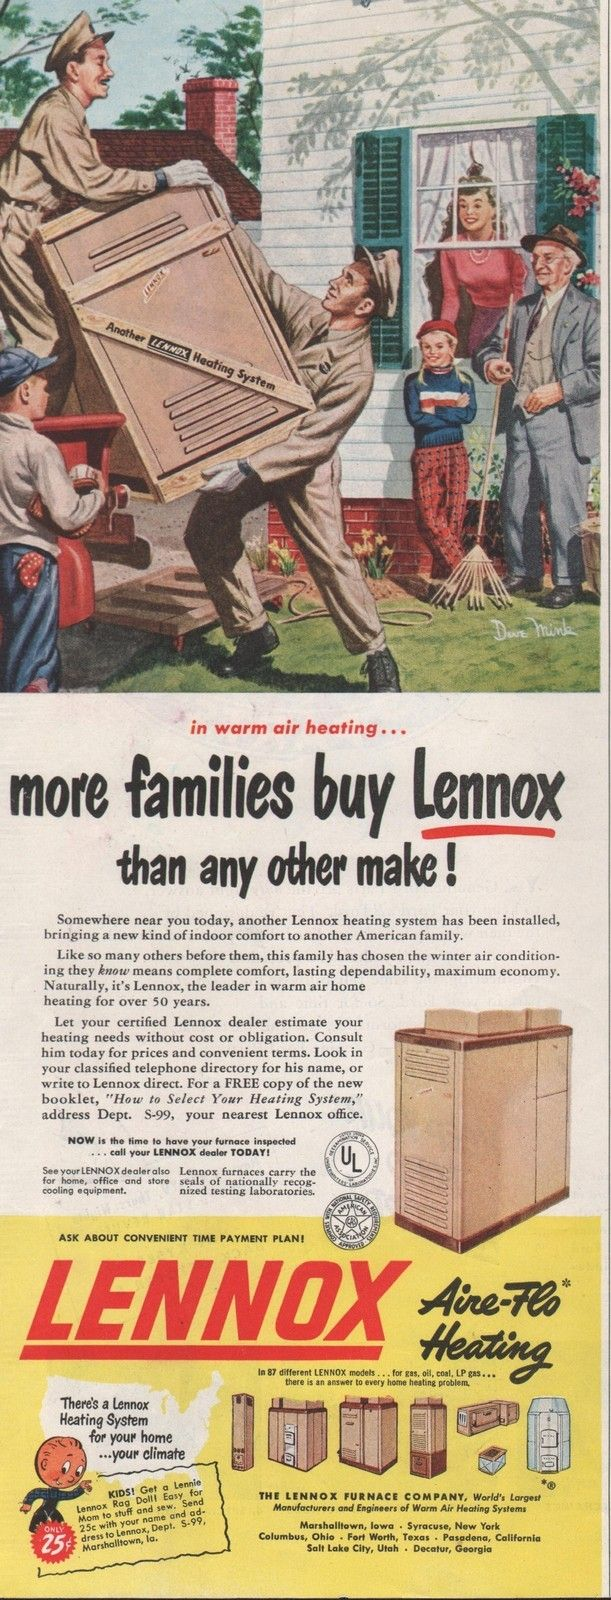 1950 Vintage Lennox Aire Flo Heating More Families Buy Print Ad | eBay